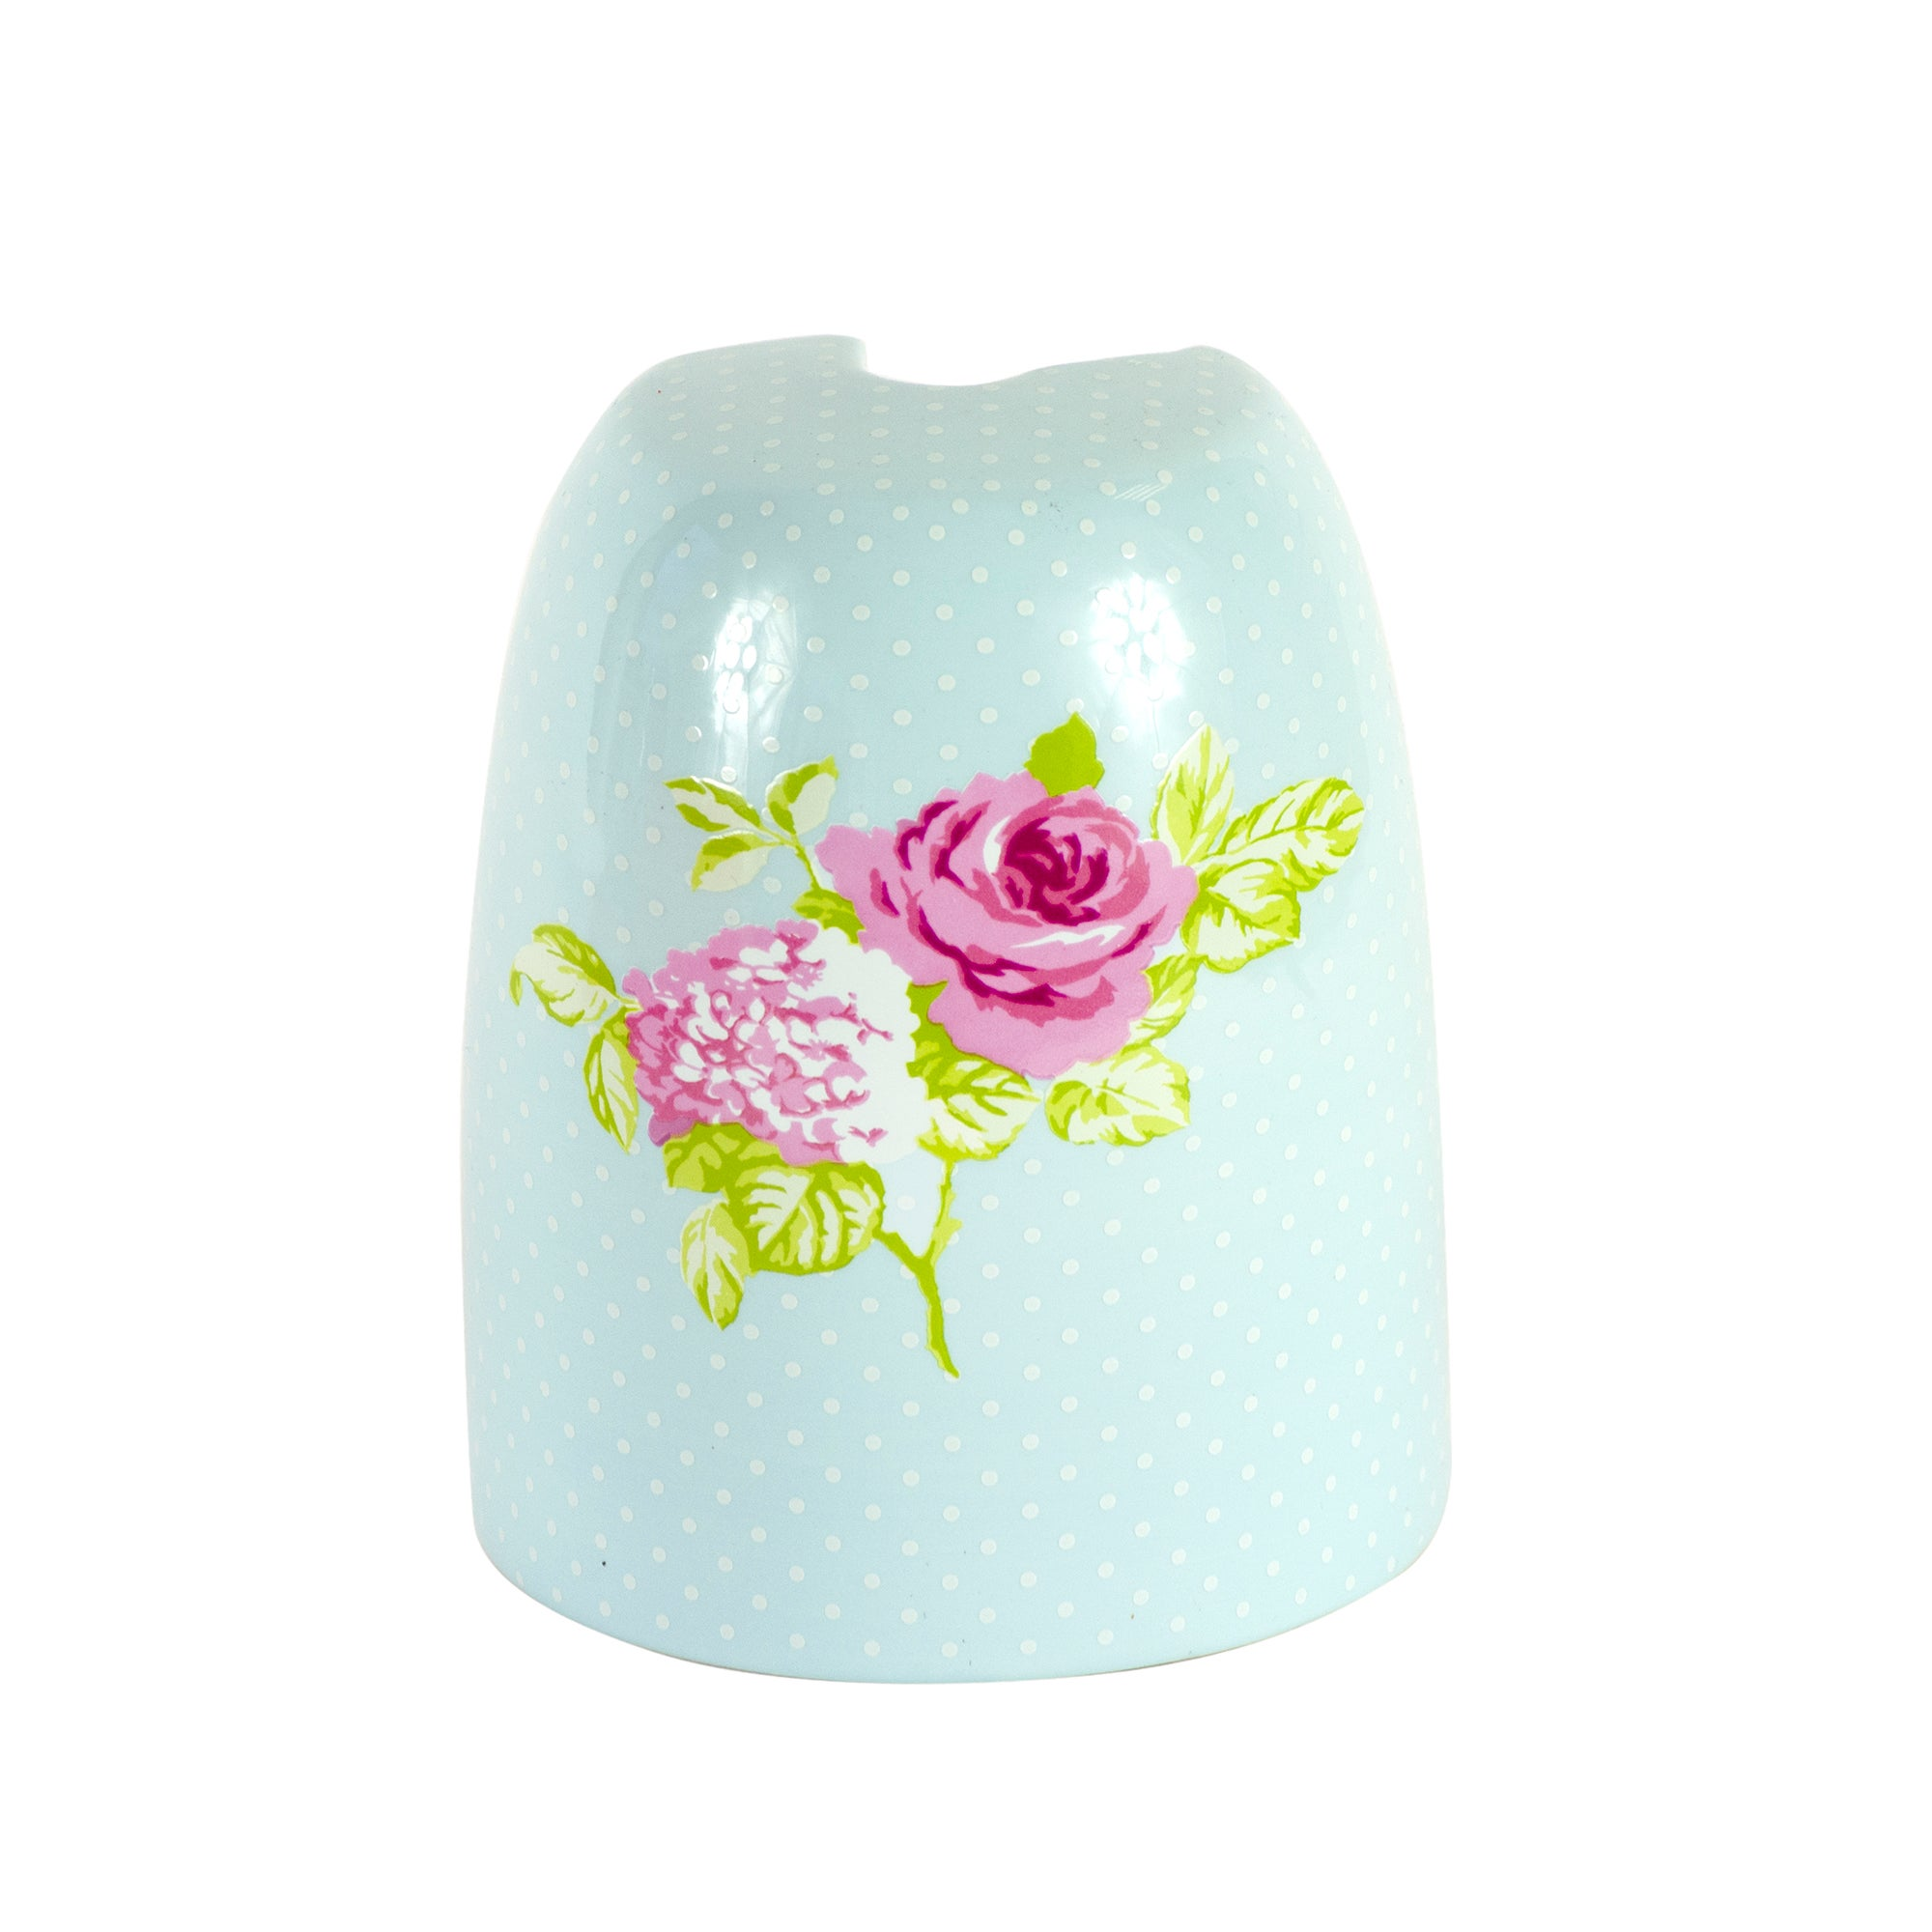 Rose and Ellis Clarendon Collection Toiletbrush Holder